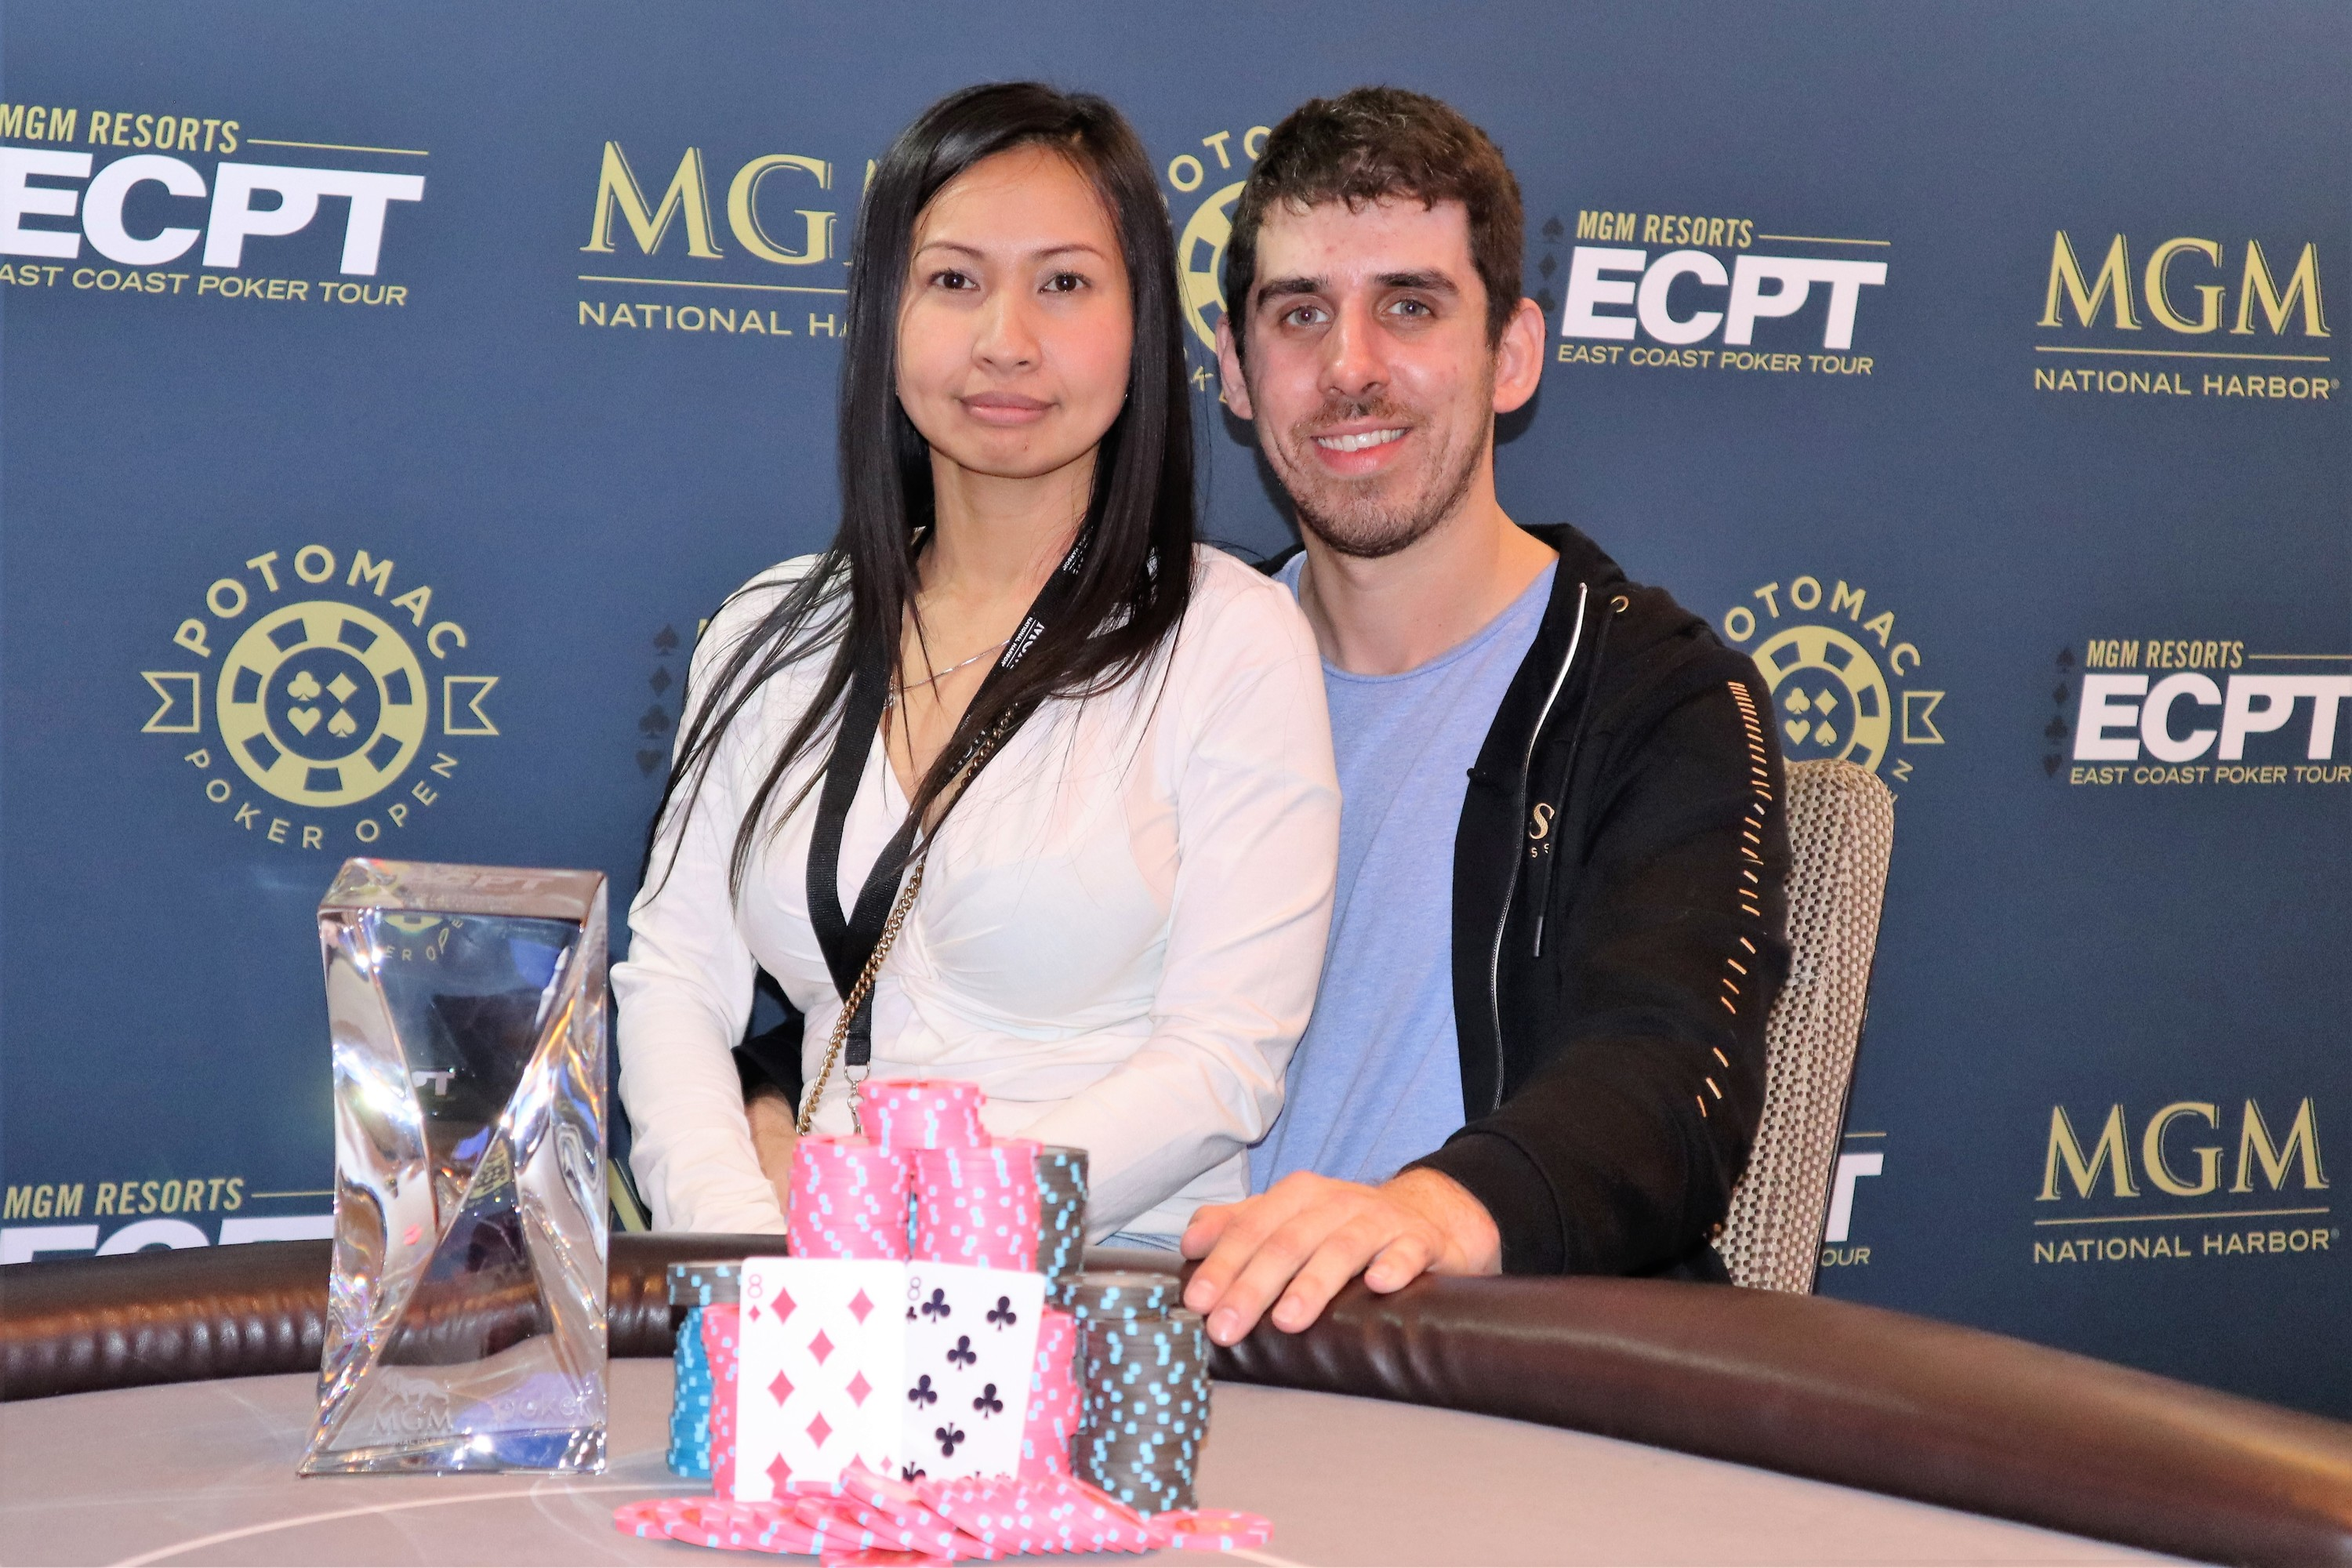 Matthew Sesso wins the 2020 Potomac Winter Poker Open Main Event